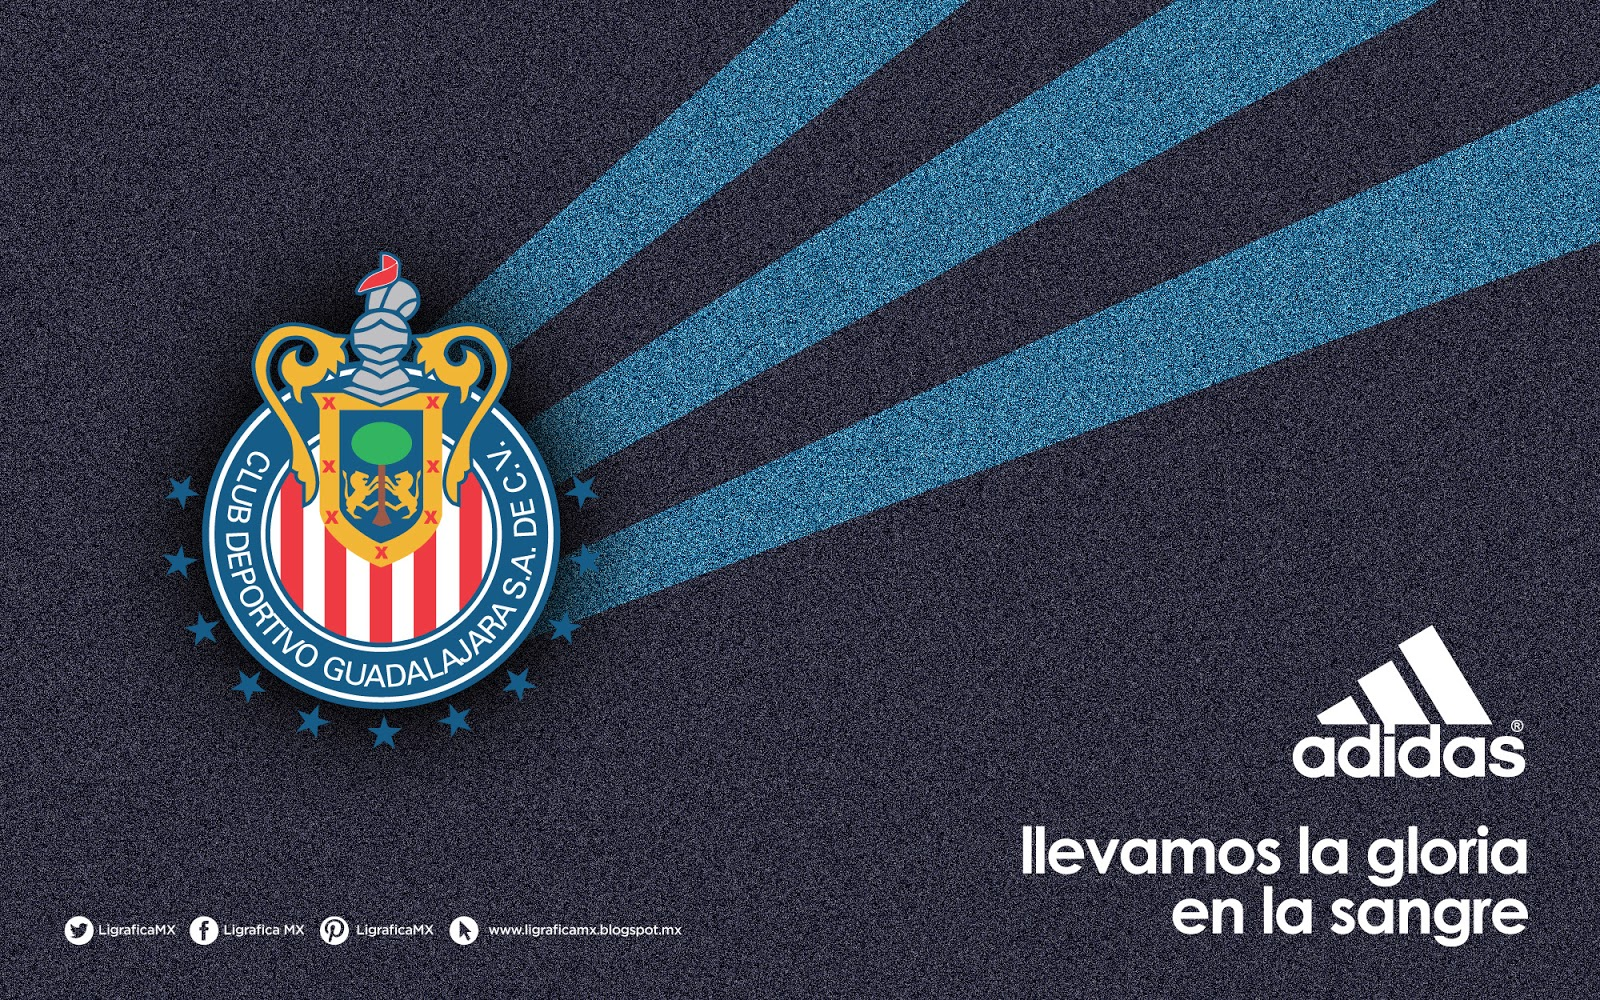 Chivas adidas wallpaper and background image 1600x1000 id598444 products adidas chivas wallpaper voltagebd Images